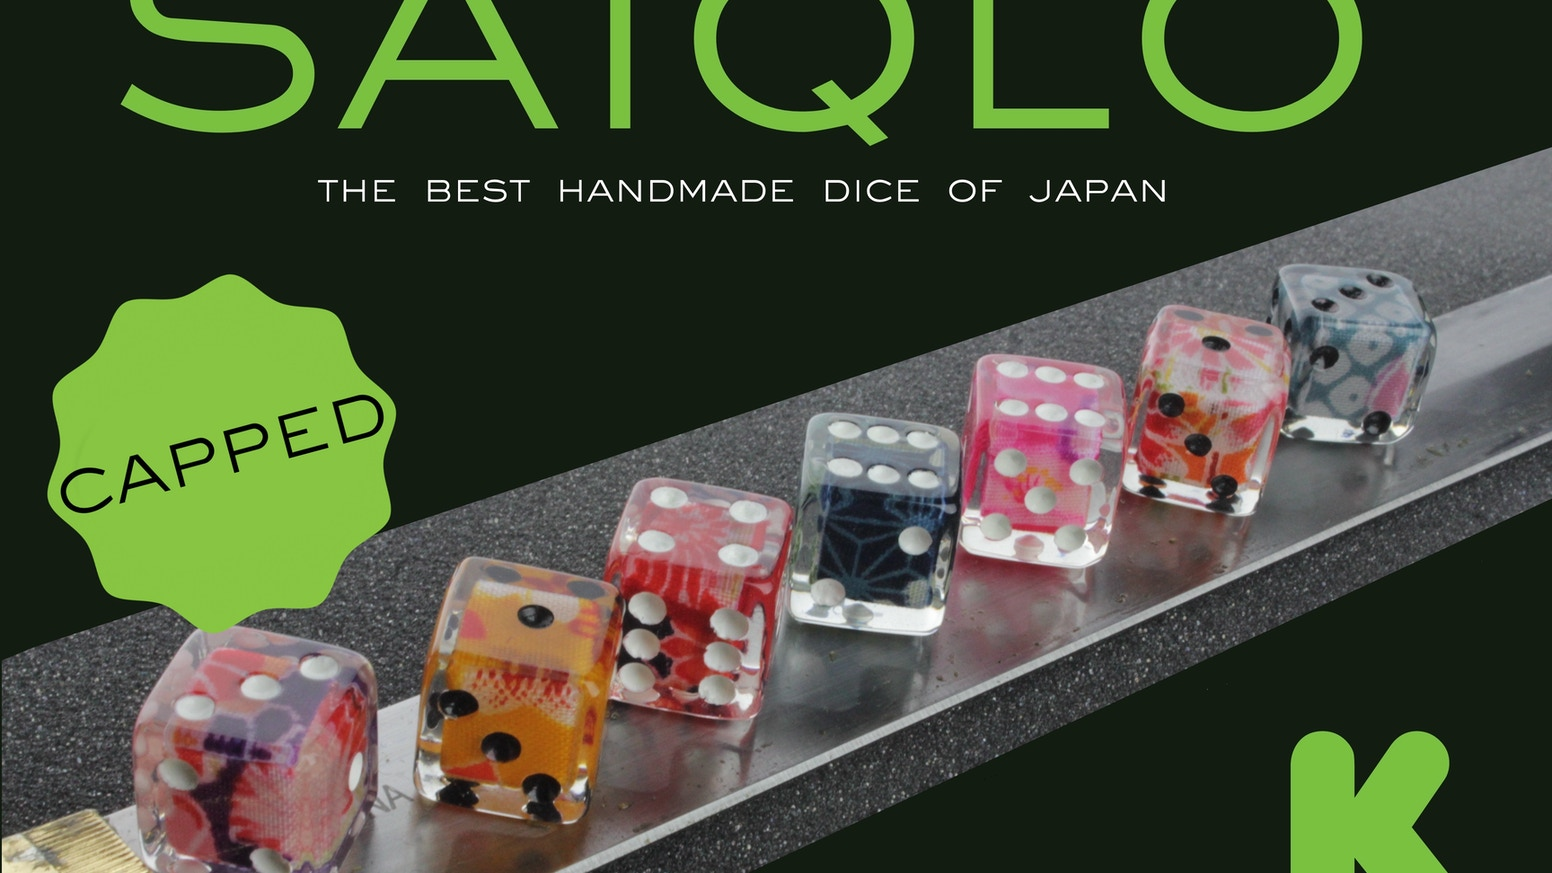 The best handmade dice from Japan!